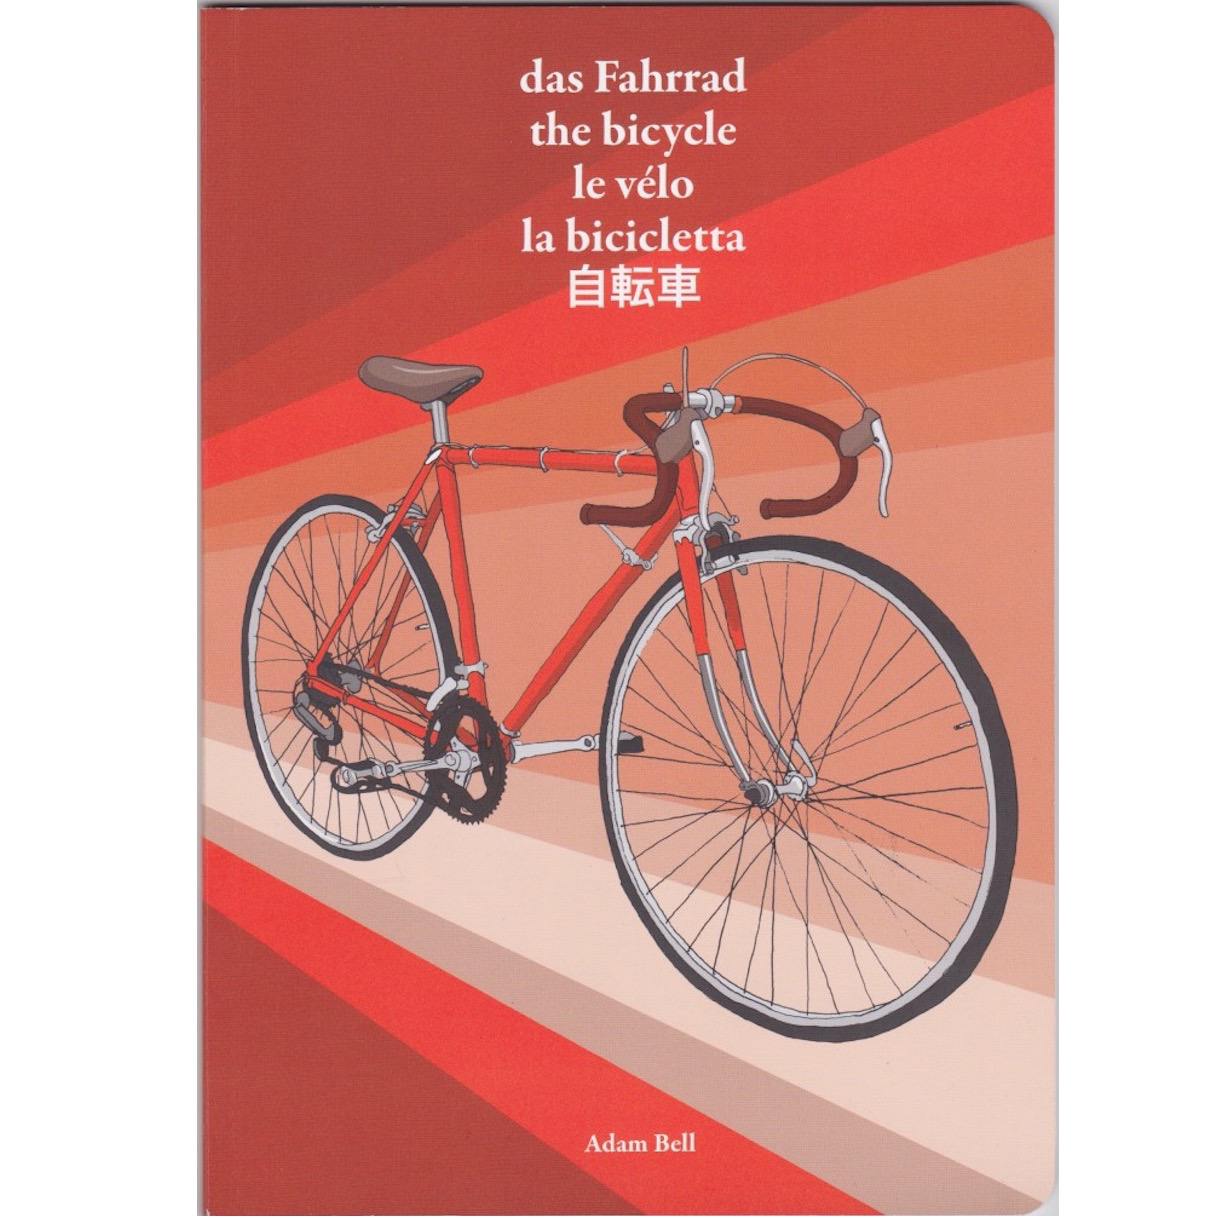 das Fahrrad the bicycle le vélo la bicicletta 自転車